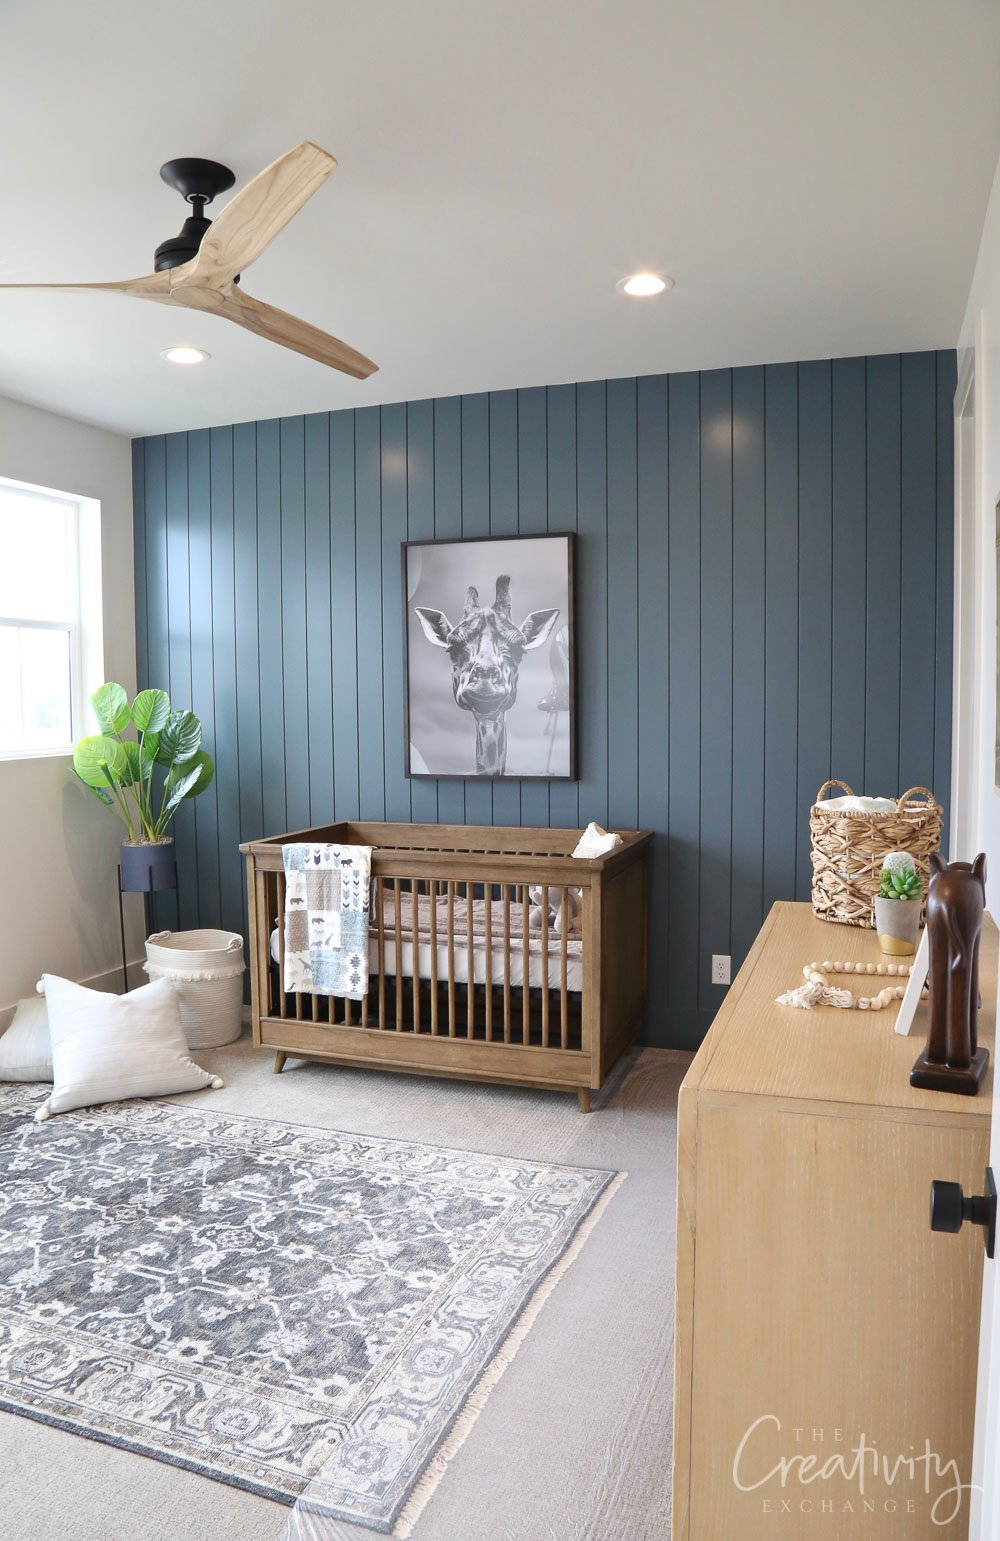 Painted shiplap accent wall painted with Sherwin Williams Slate Tile